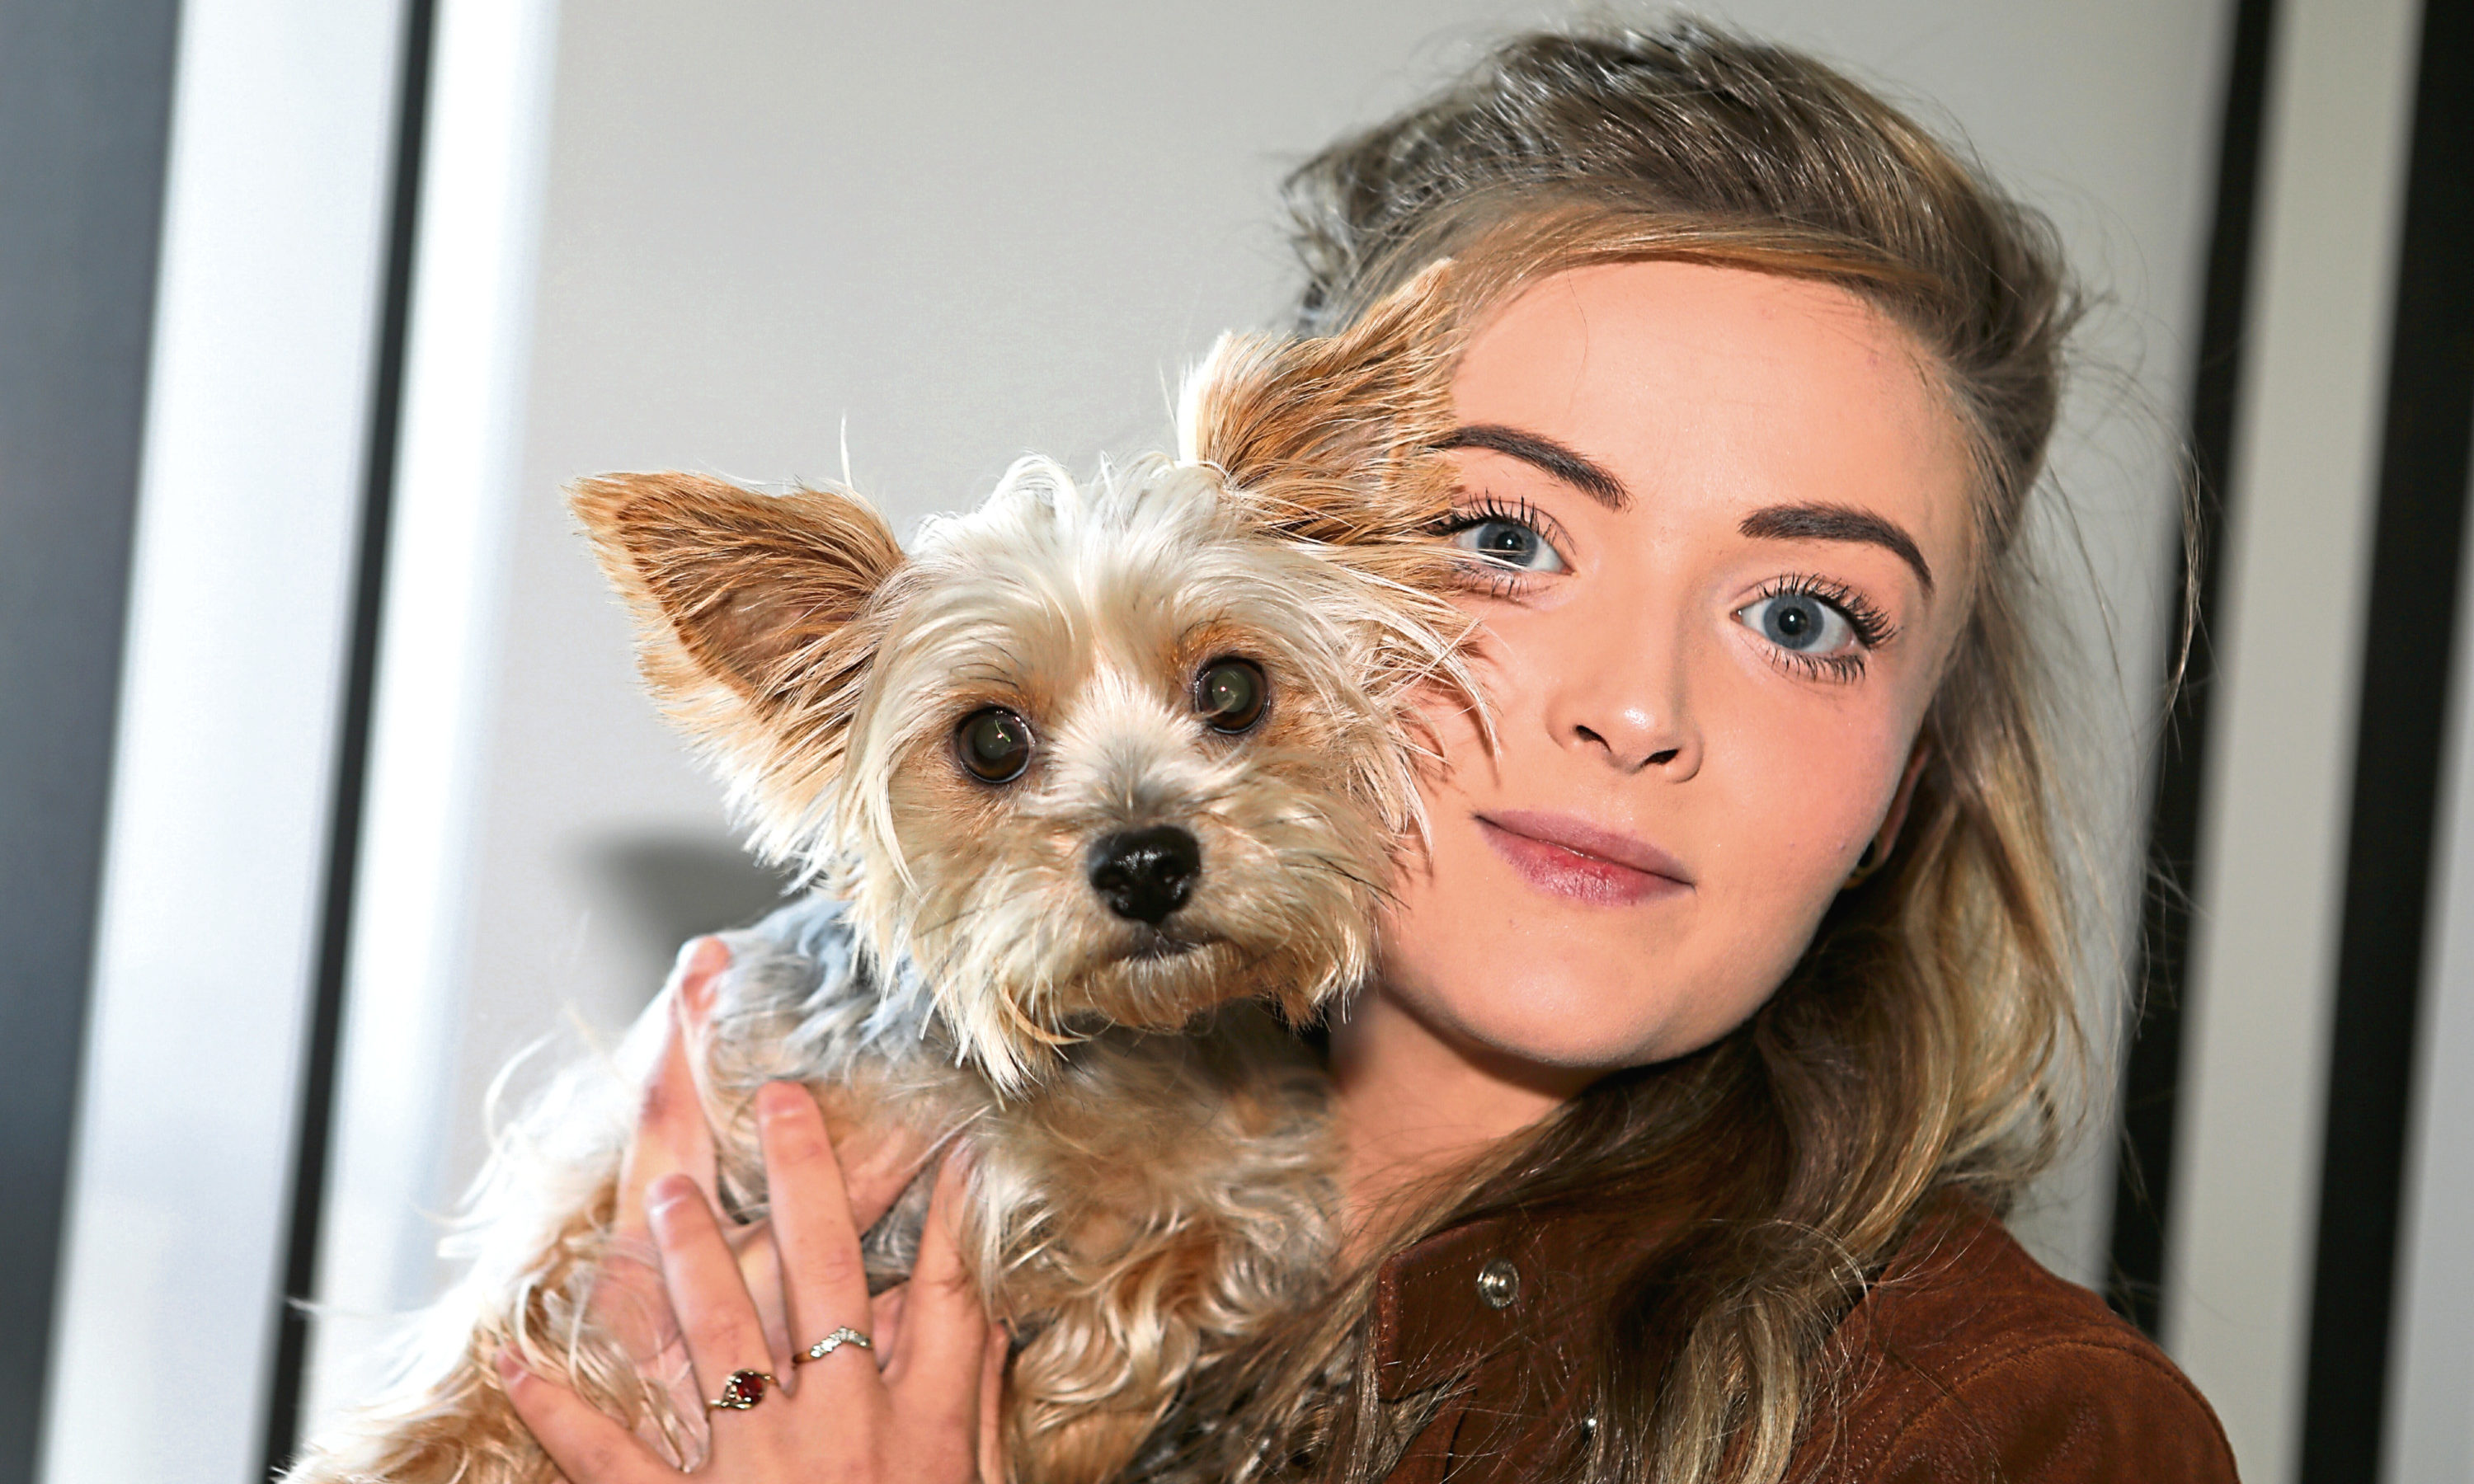 Rebecca McIntosh, 25, with Yorkshire terrier Millie.